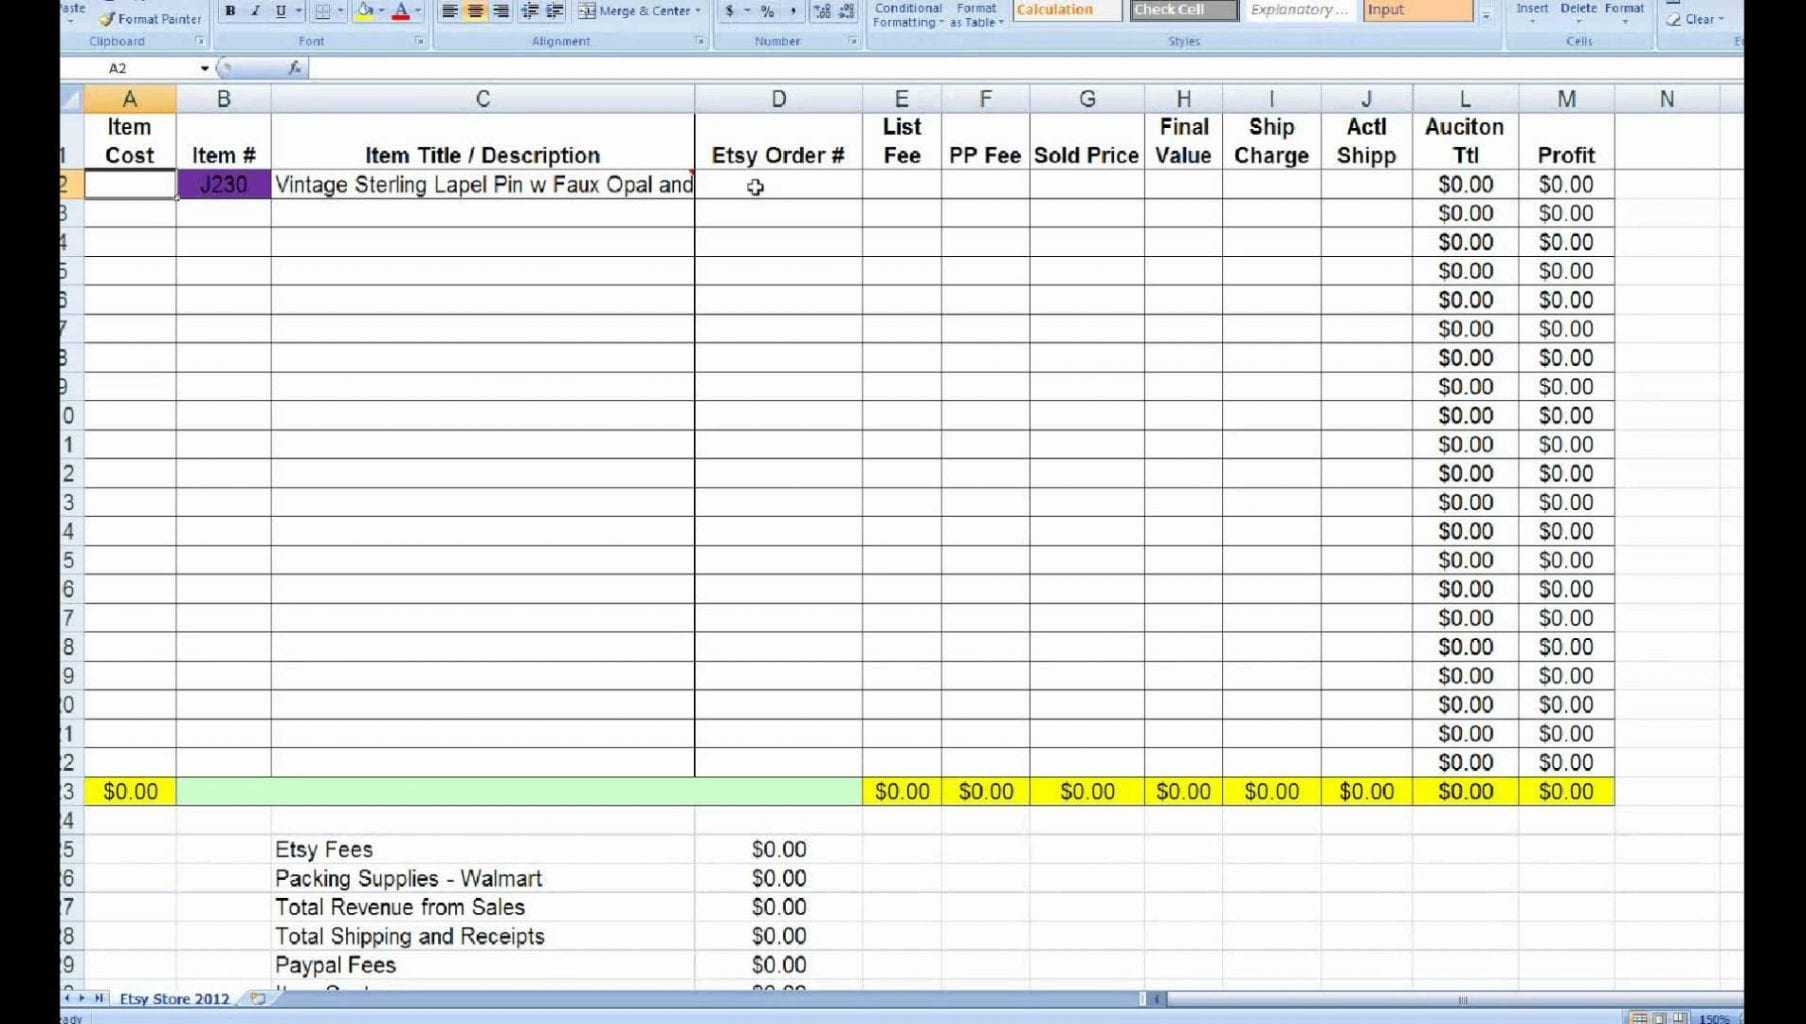 Inventory Management Excel Formulas Inventory Tracking Spreadsheet Template Free Free Spreadsheet Tracking Spreadsheet Inventory Spreadsheet Spreadsheet Templates for Busines Free Spreadsheet Tracking Spreadsheet Inventory Spreadsheet Spreadsheet Templates for Busines Inventory Management In Excel Free Download